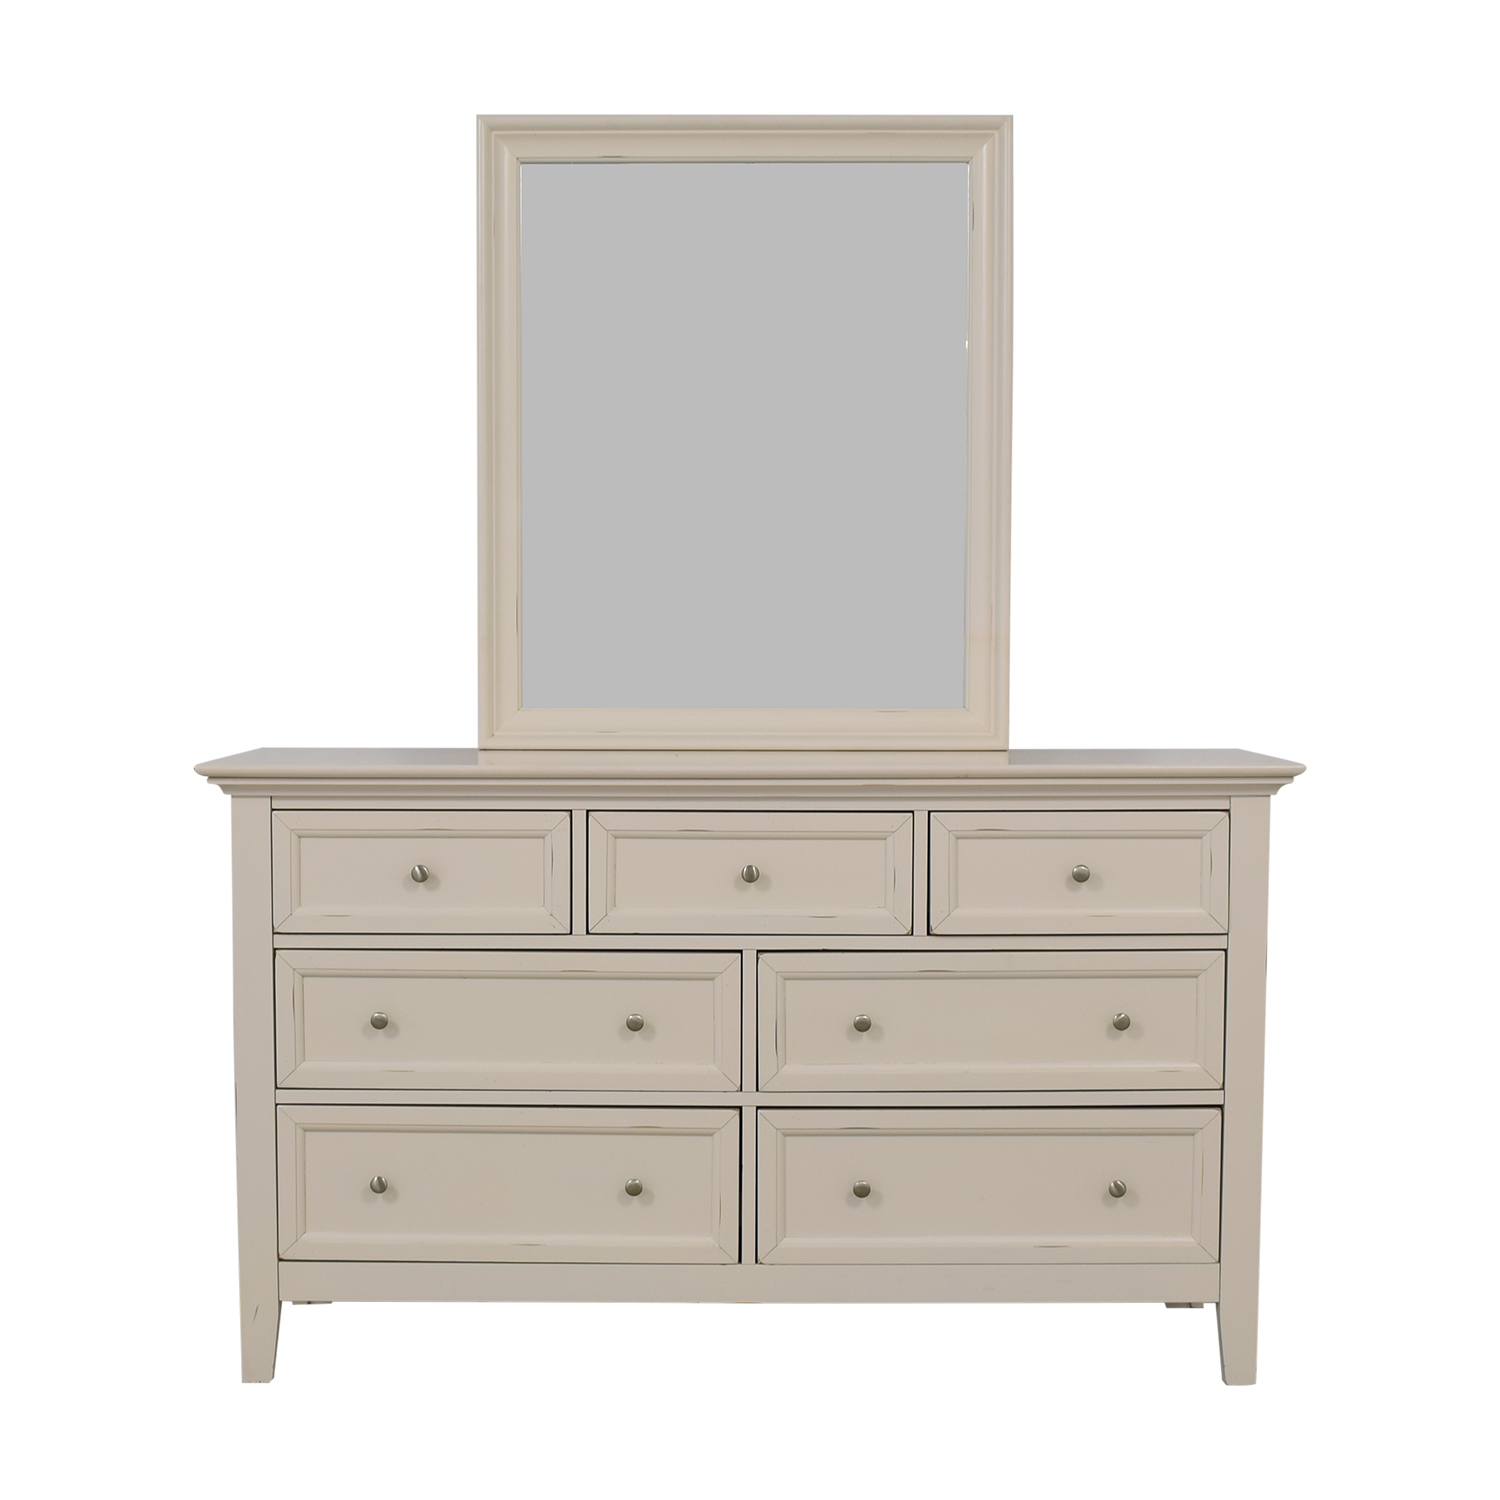 shop Macy's Sanibel Dresser with Mirror Macy's Dressers